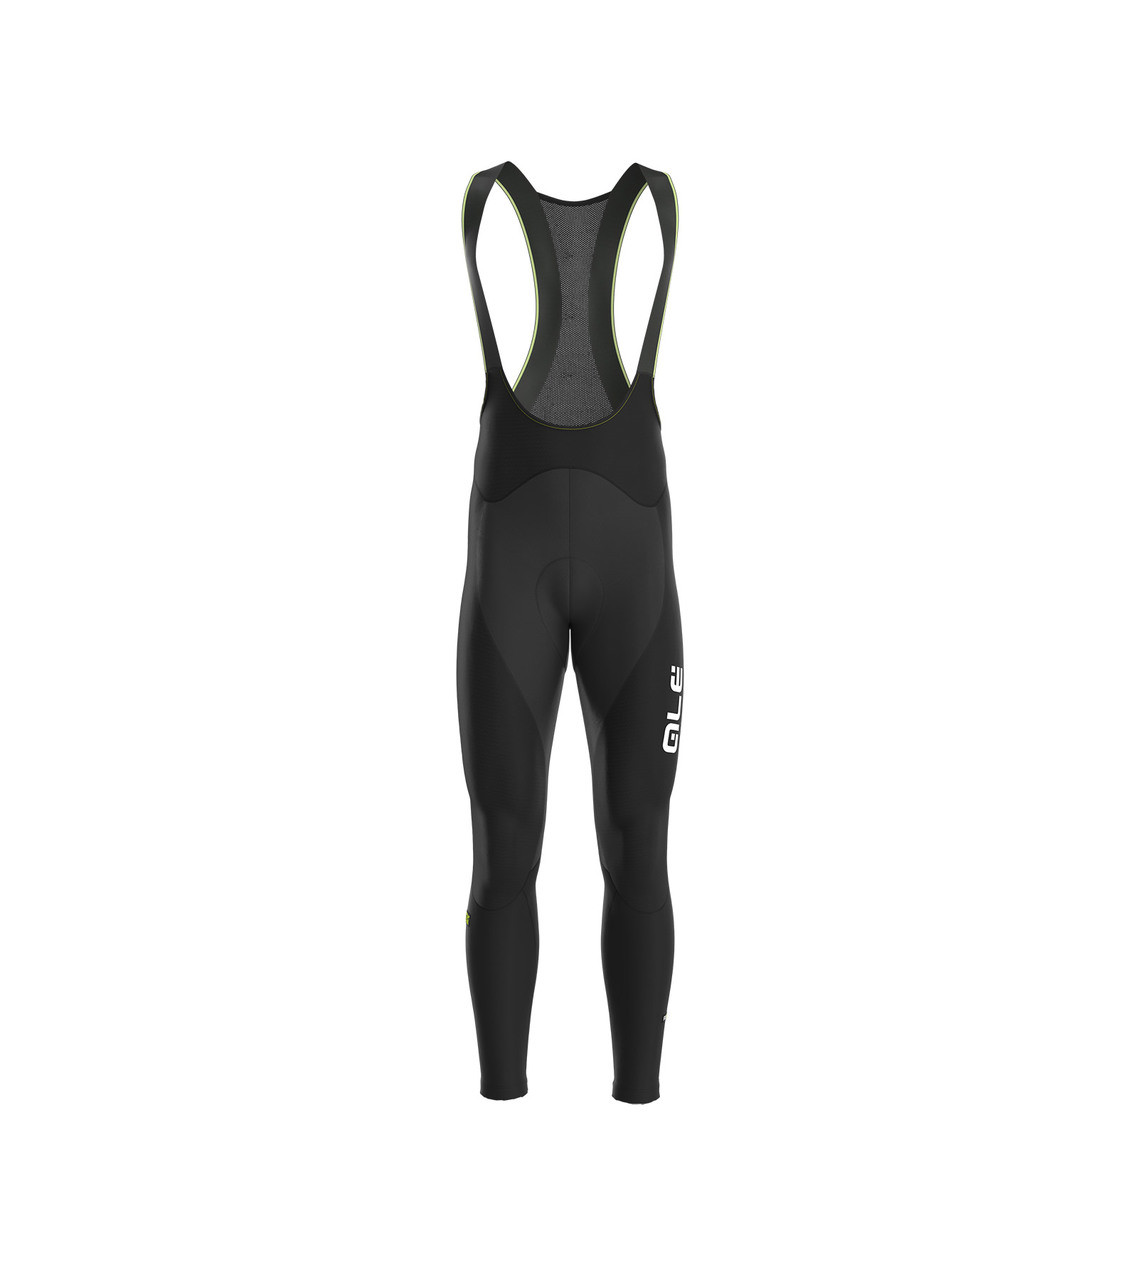 ALE Clima PRR Clima Protection Thermal Black Bib Tights